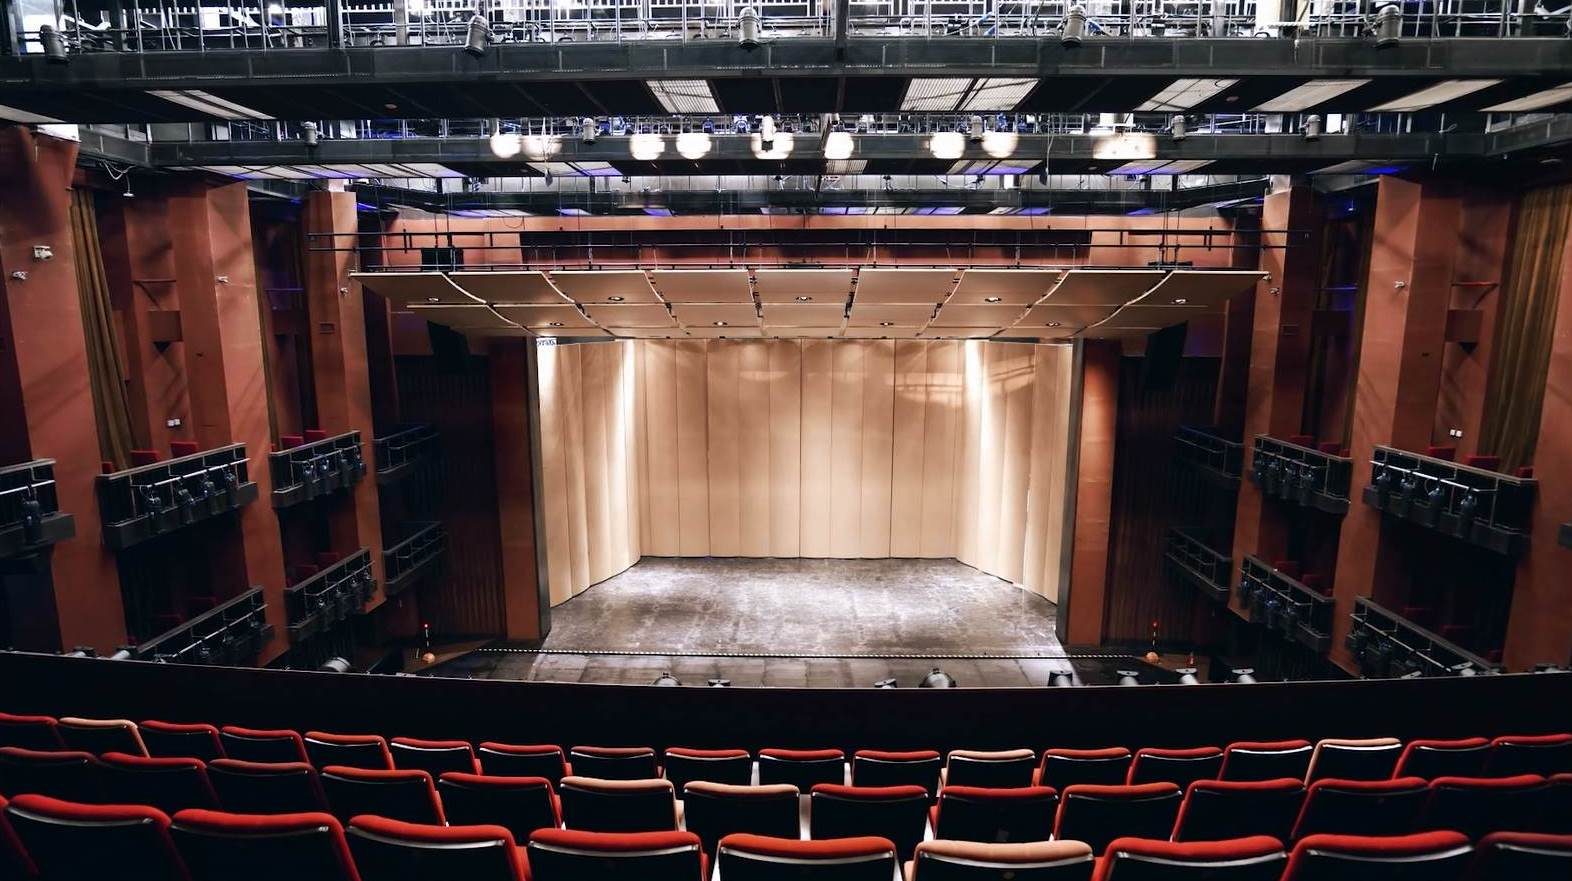 Venue Introduction: Acoustic reflection panels and The orchestra pit